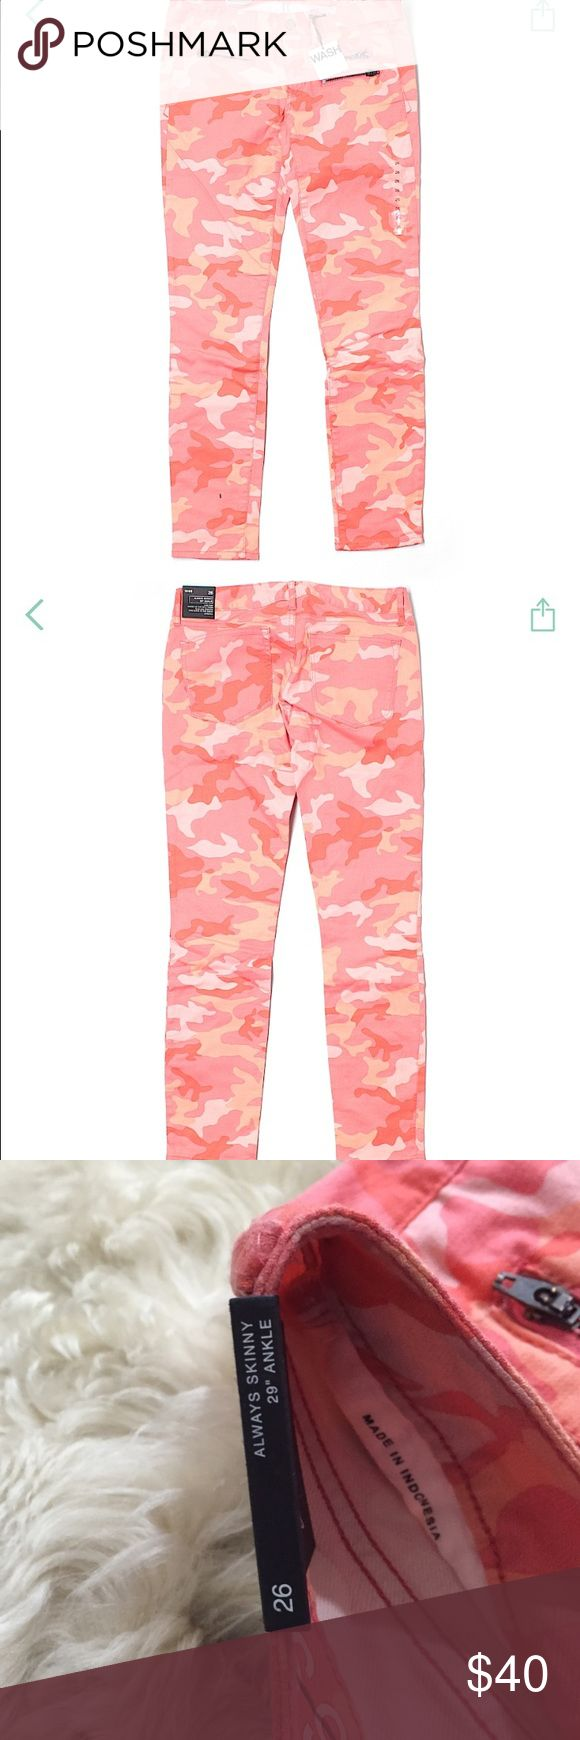 "NWT Gap camouflage always skinny 1969 jeans Sz 26 New with tags. 29"" ankle. Size 26. Camouflage pink/peach/salmon cakes color. GAP Jeans Skinny"